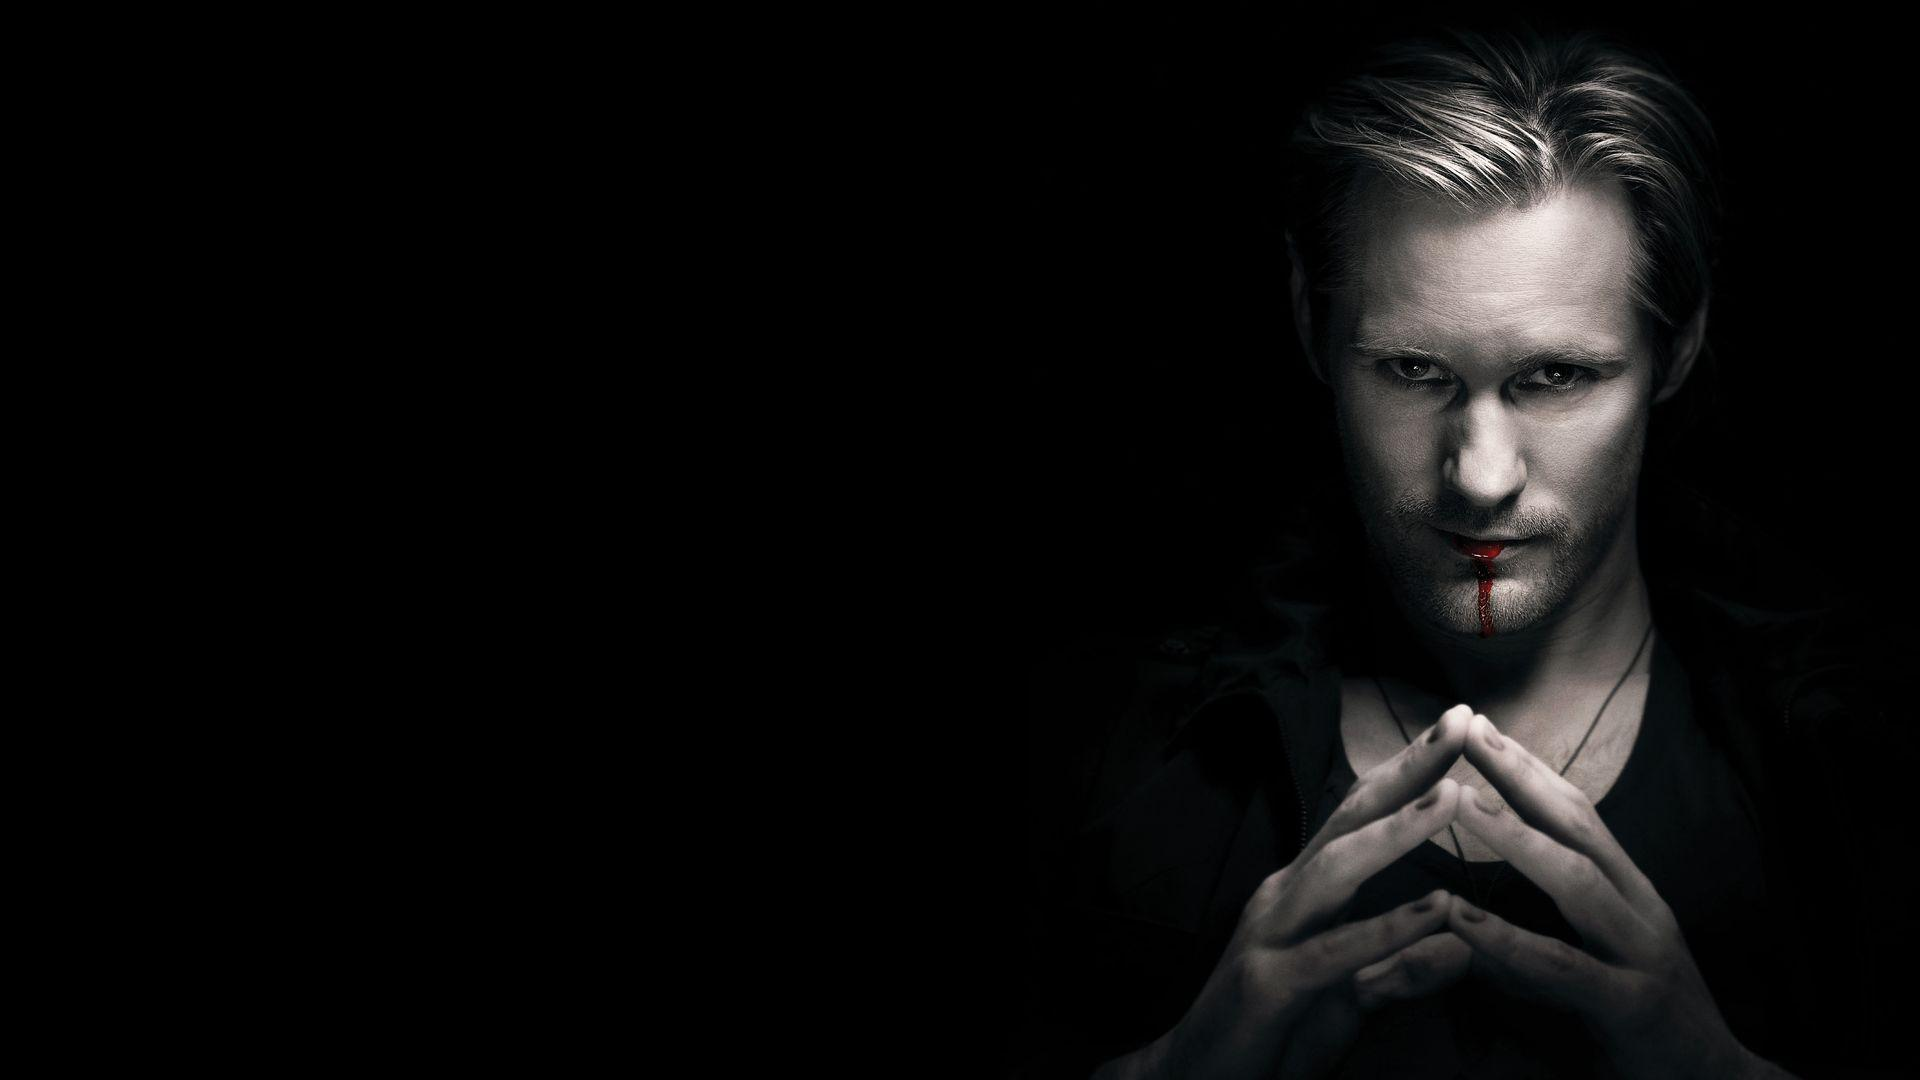 eric true blood wallpaper - photo #6